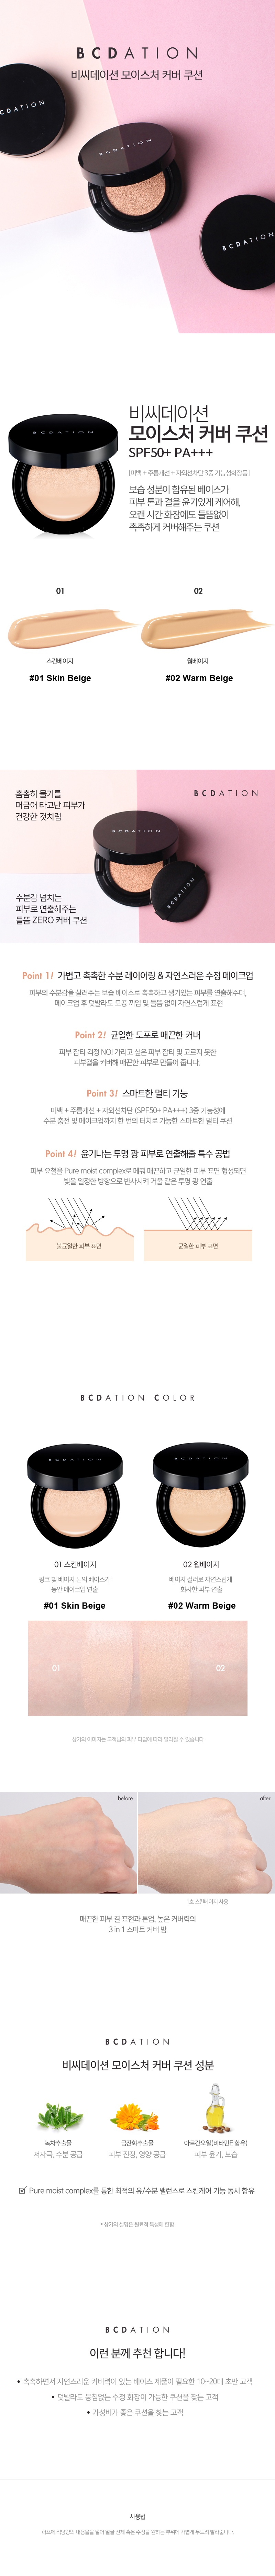 Tony Moly BCDation Moisture Cover Cushion korean cosmetic makeup product online shop malaysia spain portugal1